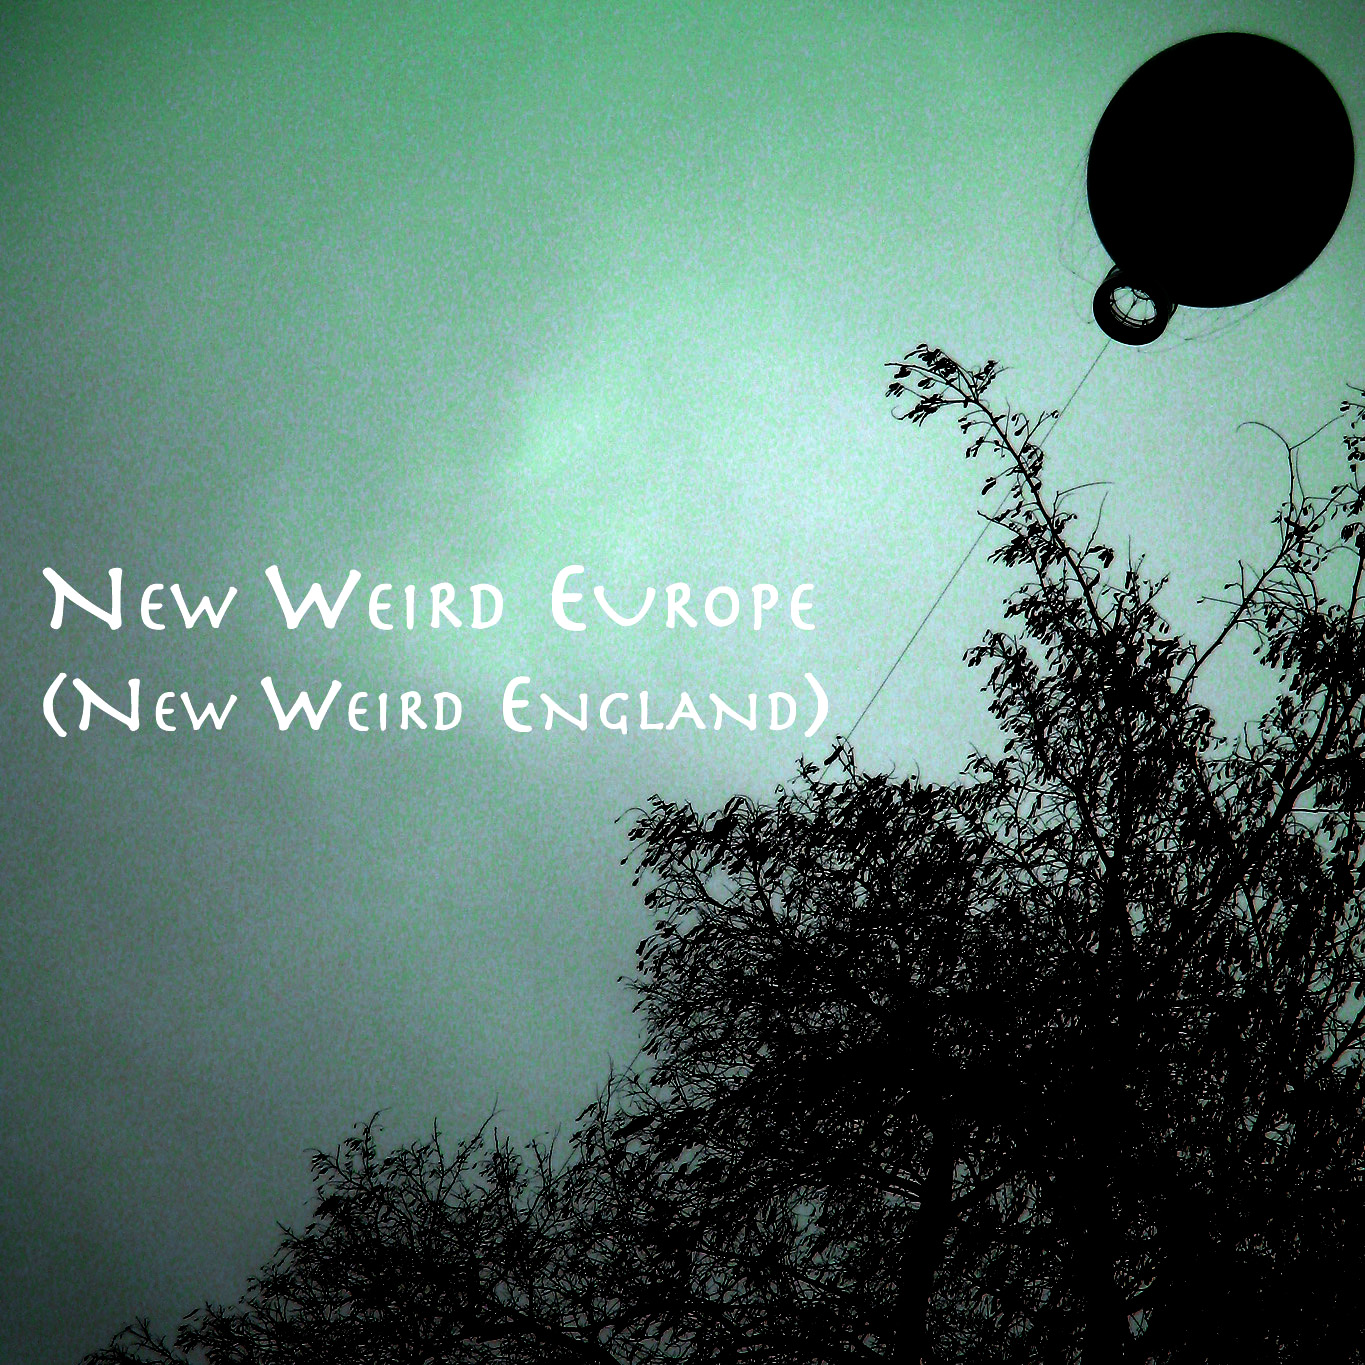 Mister Salmon - New Weird Europe (New Weird England)